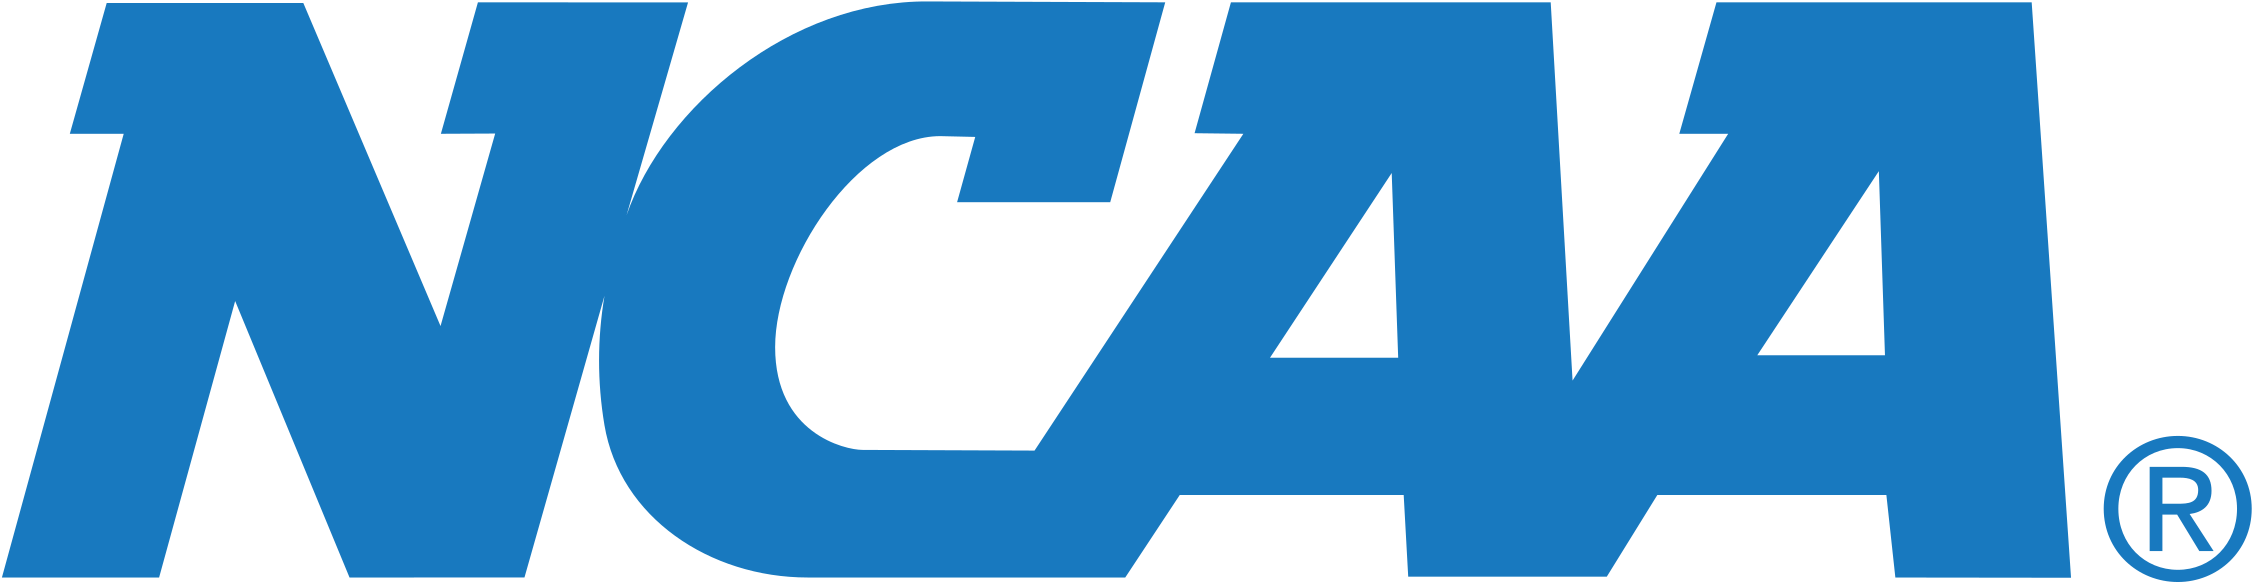 Download Ncaa Logo Png Transparent - Ncaa College Football - Full Size PNG Image - PNGkit